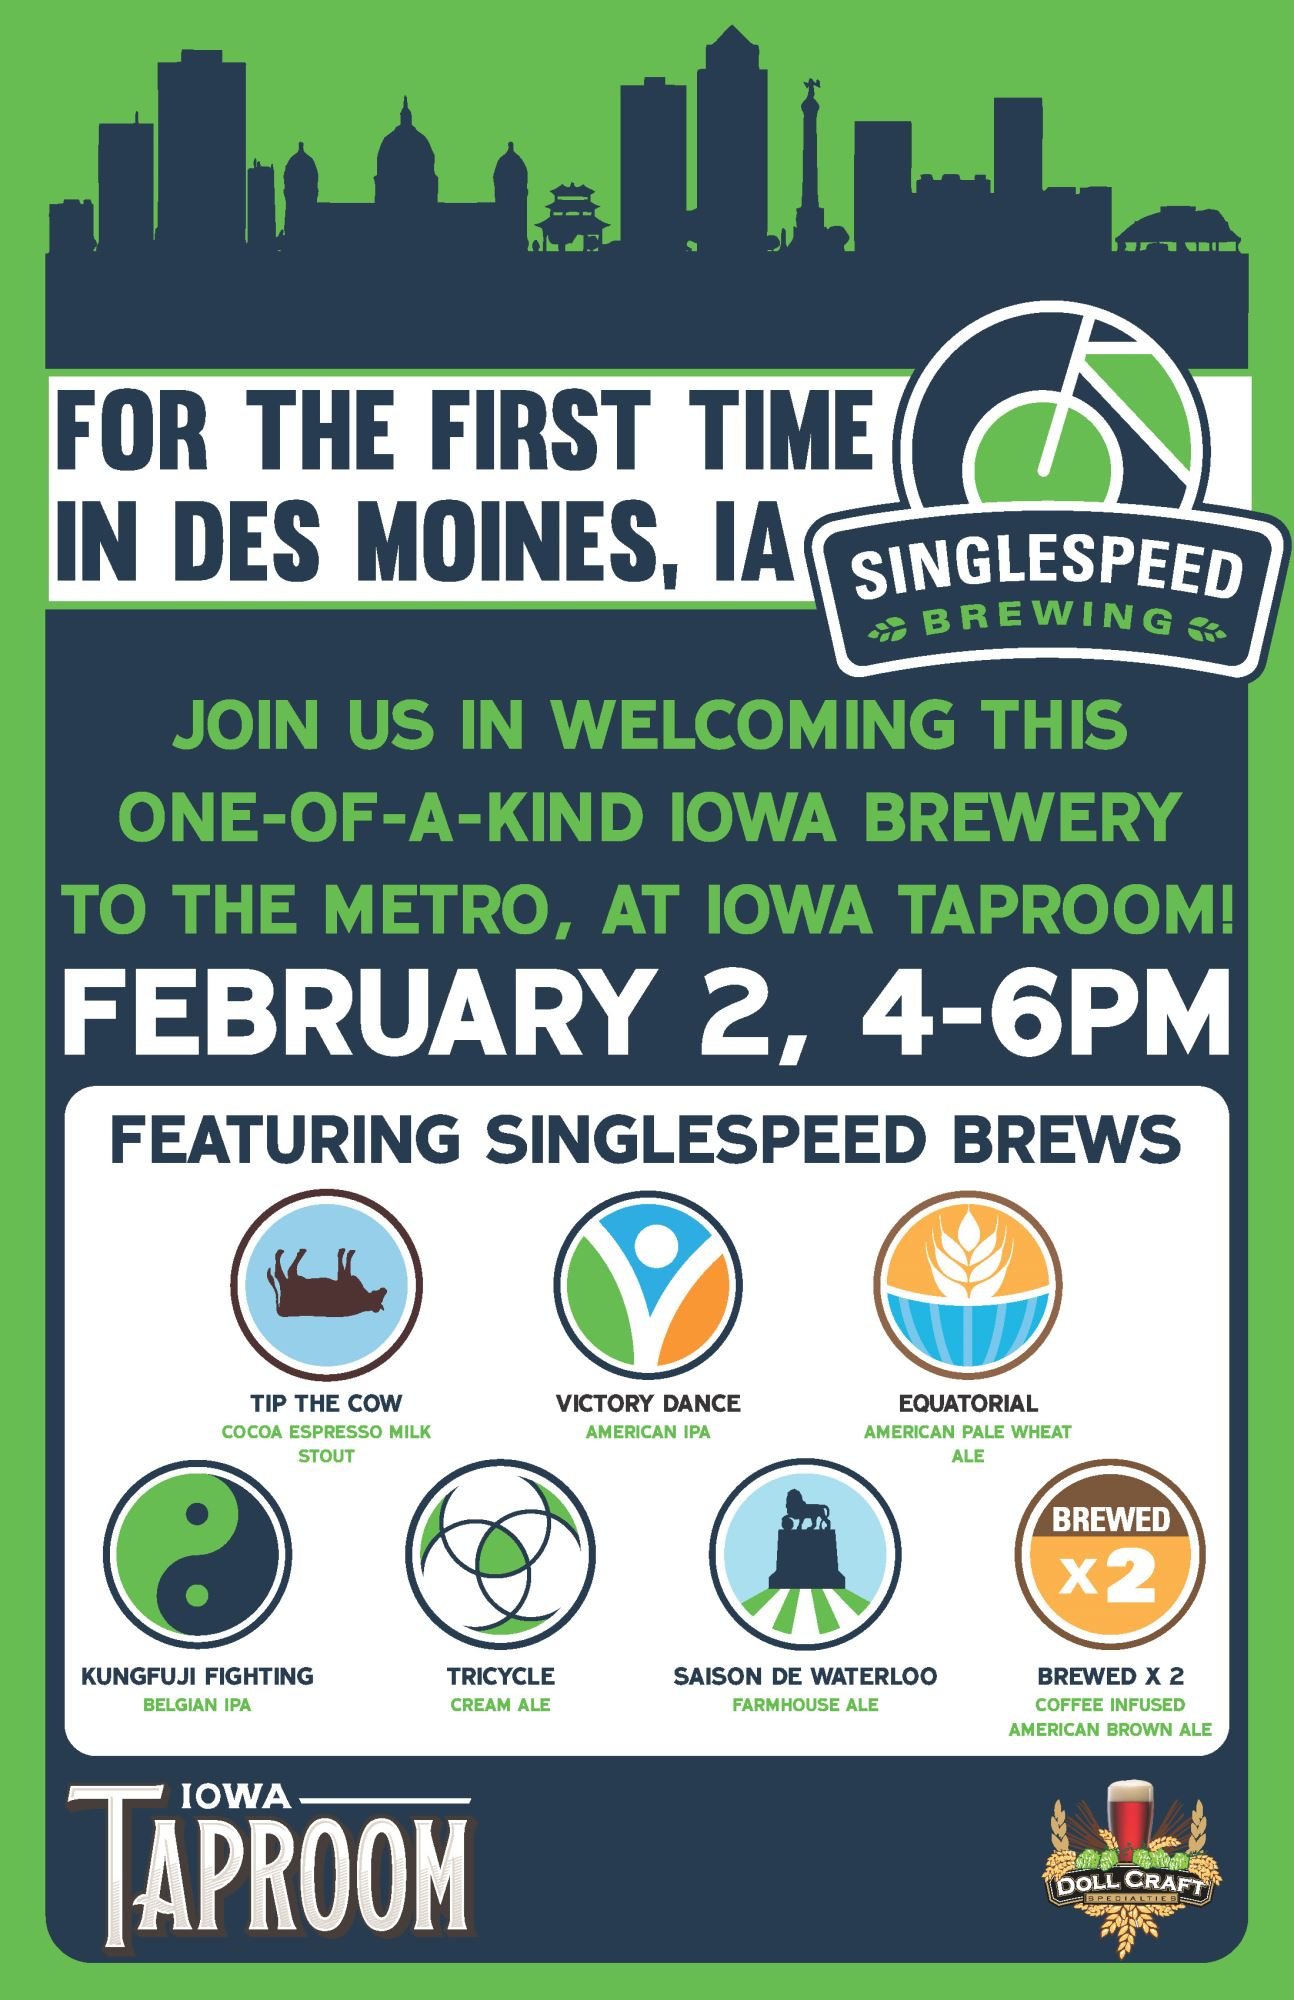 Speed dating events in des moines